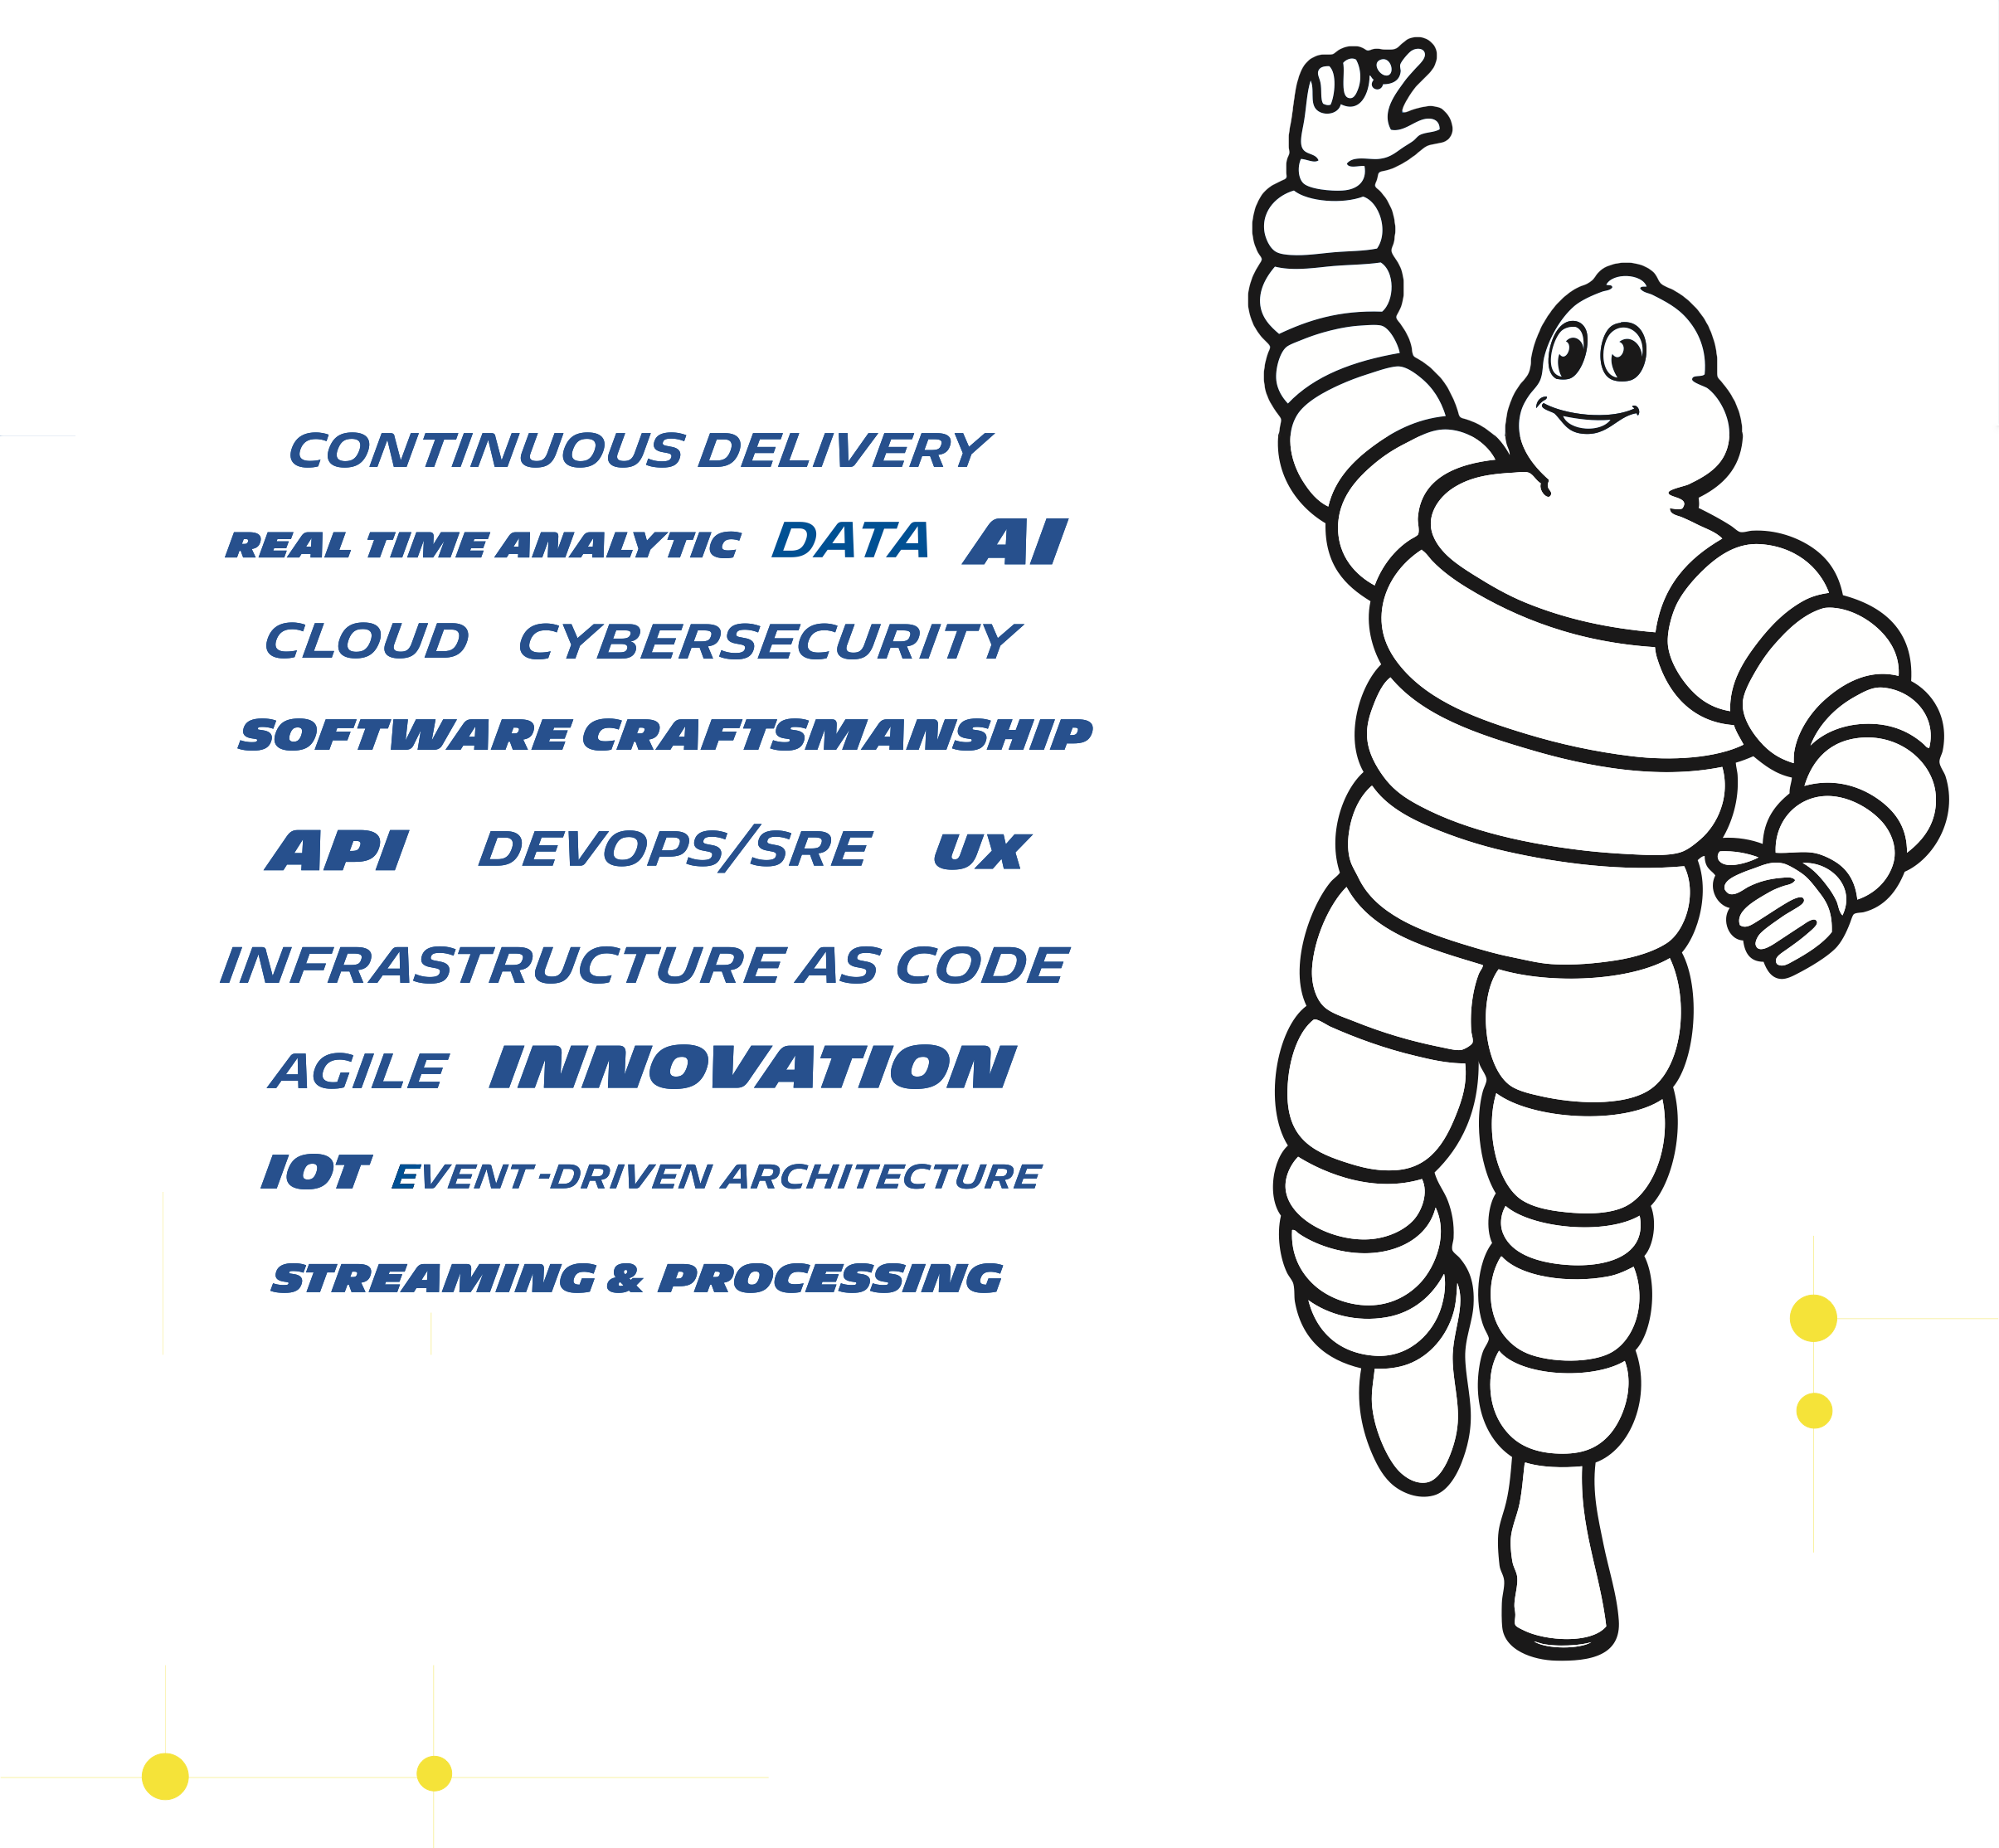 IA, continuous delivery, cloud, iot, innovation, ux, cybersecurity